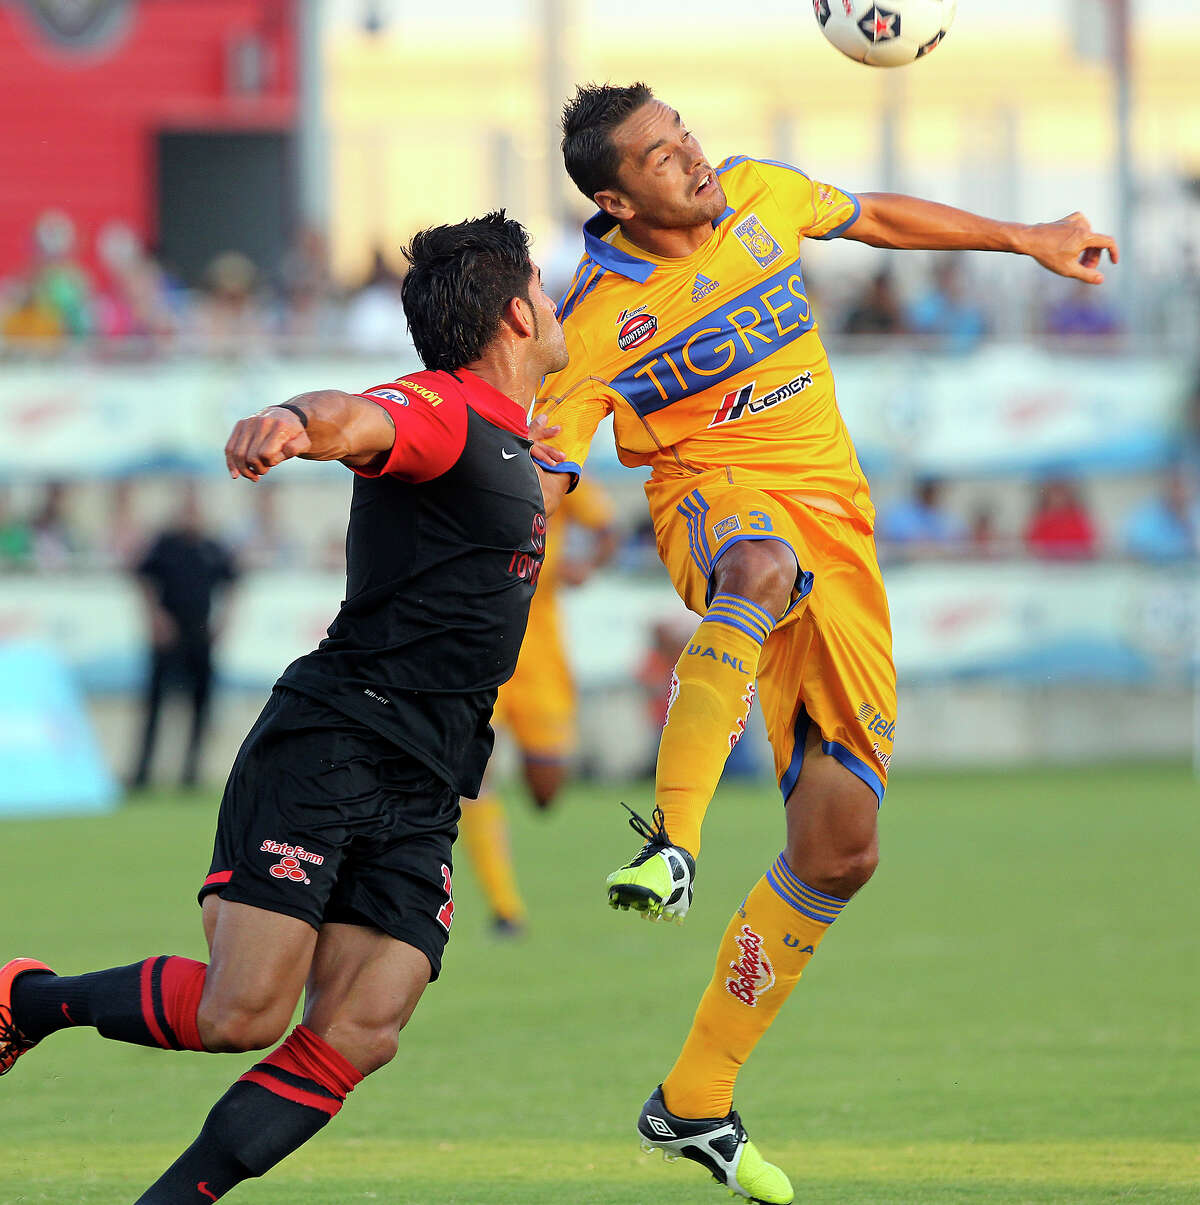 Esteban Bayona(left) defends against Anselmo Juninho as the Scorpions host the UNAL Tigres at Toyota Field on July 6, 2013.